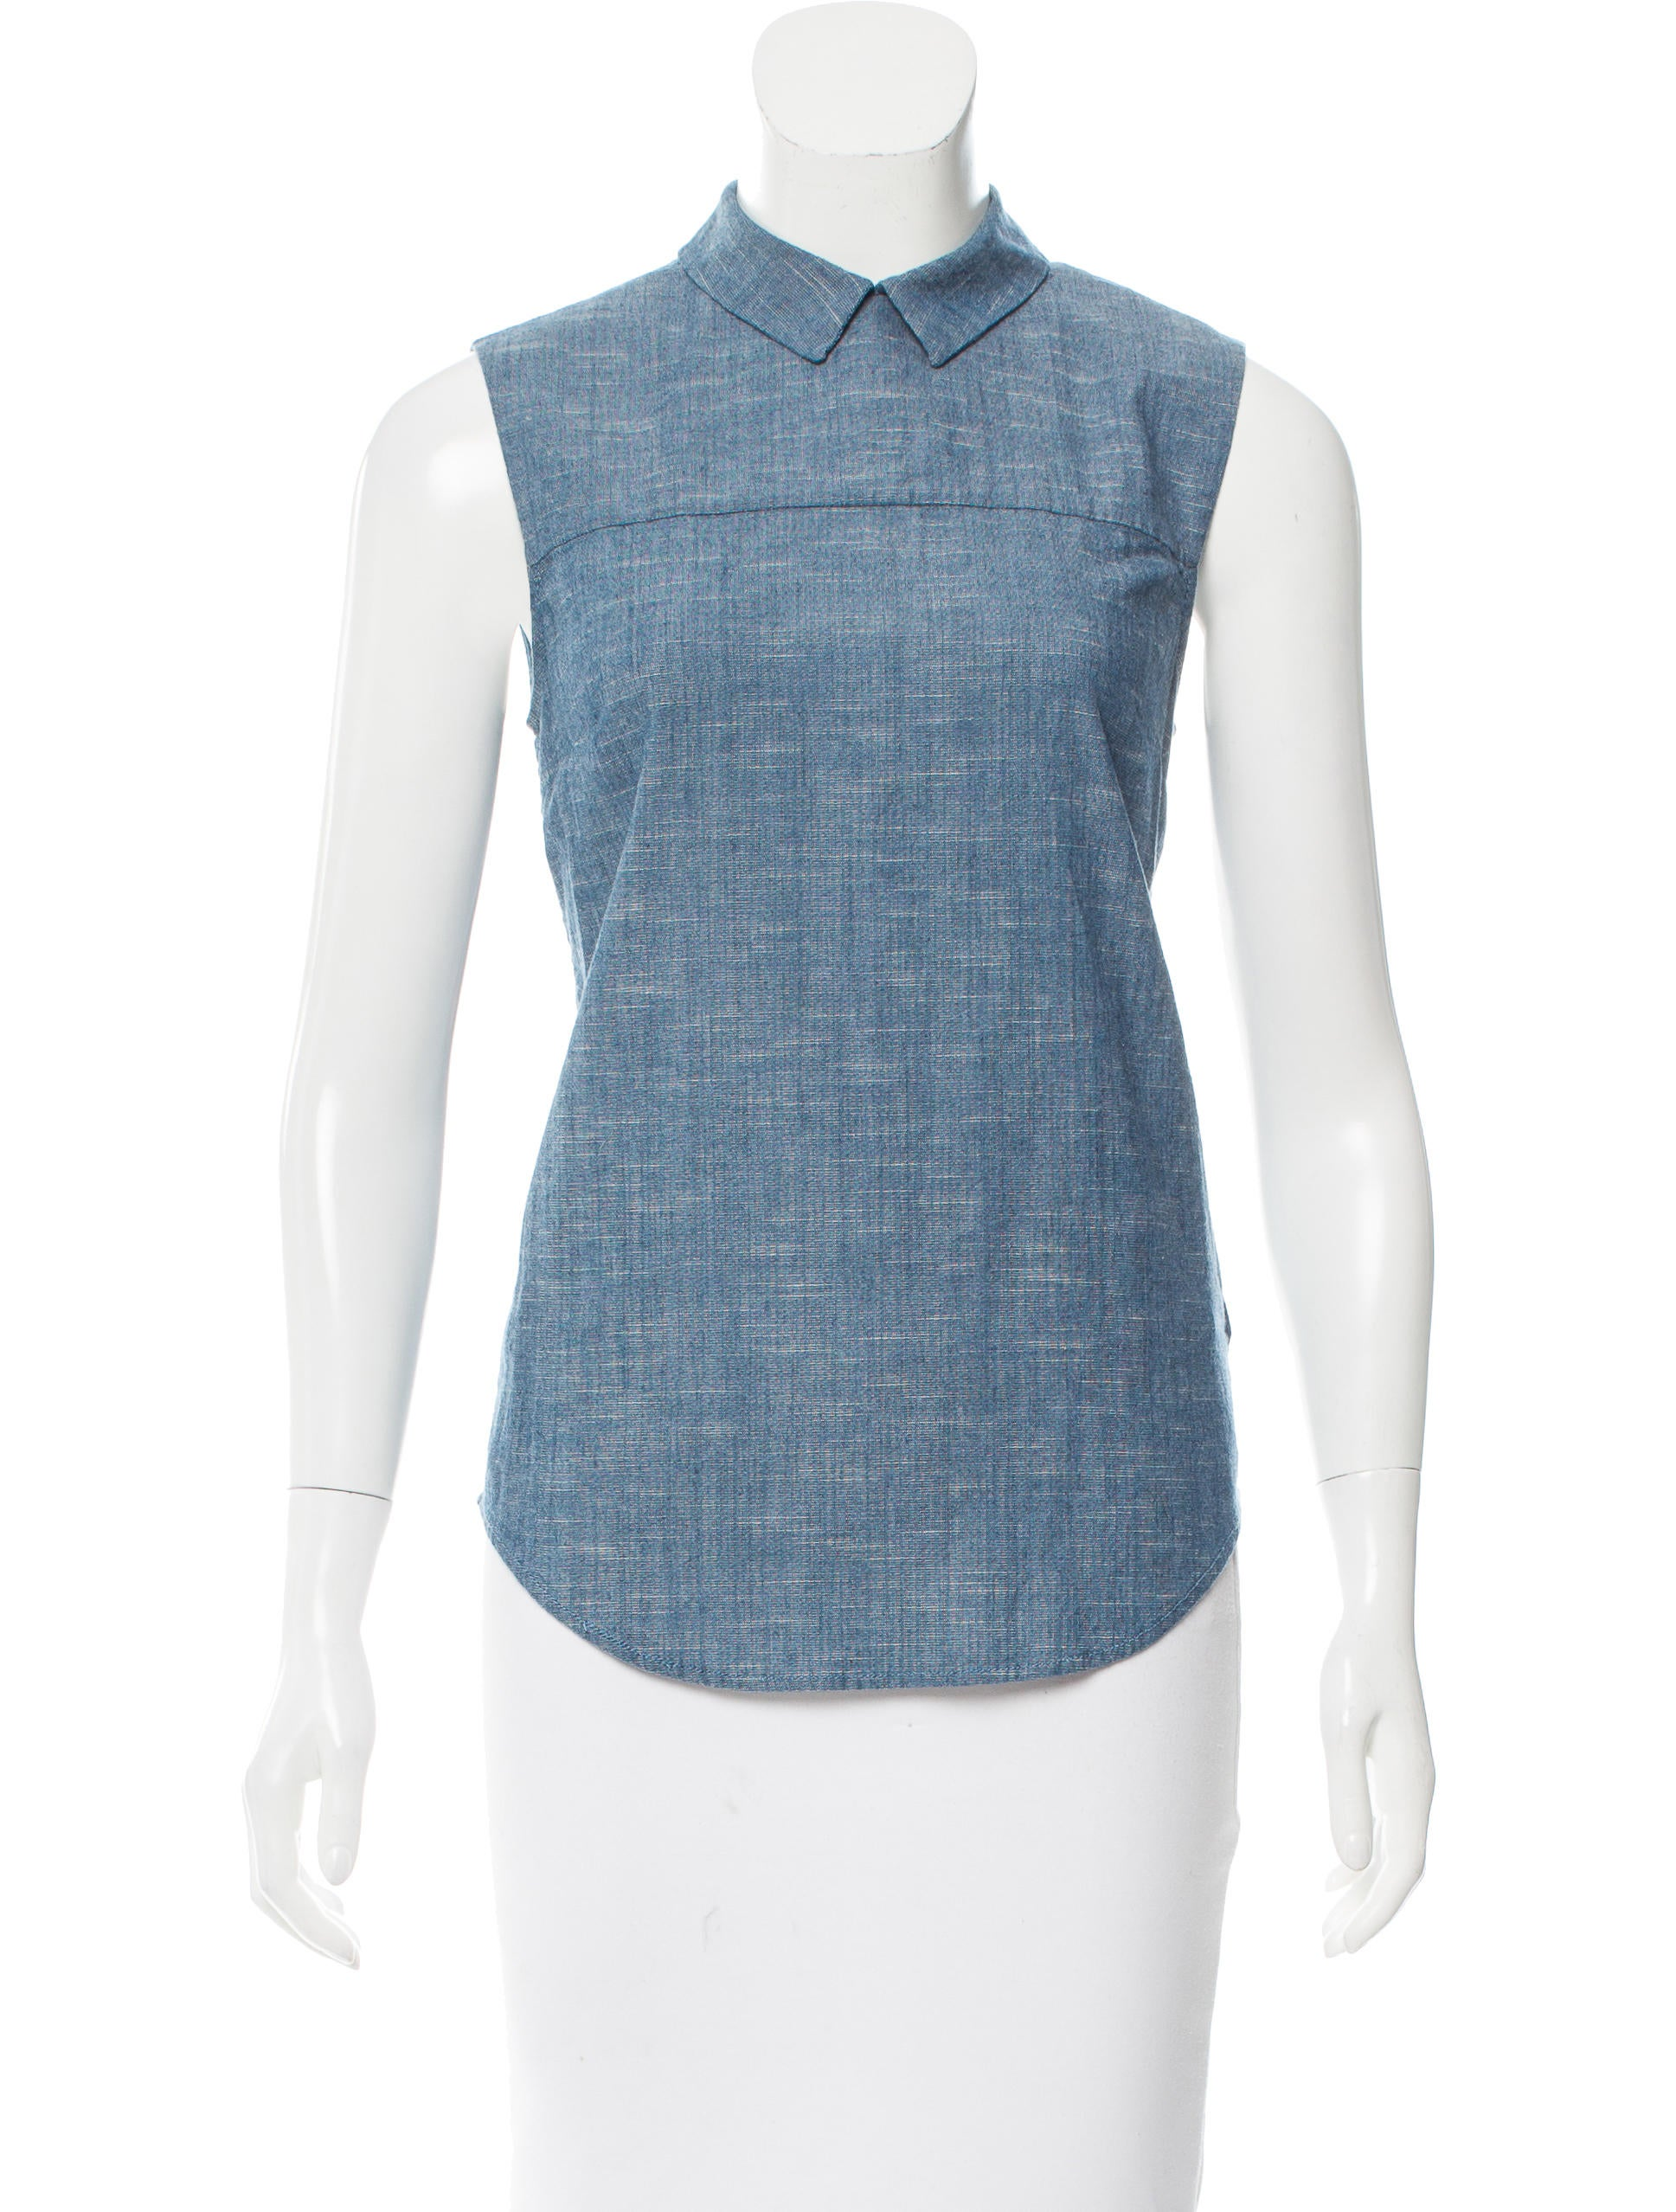 Victoria beckham sleeveless chambray top clothing for Chambray top